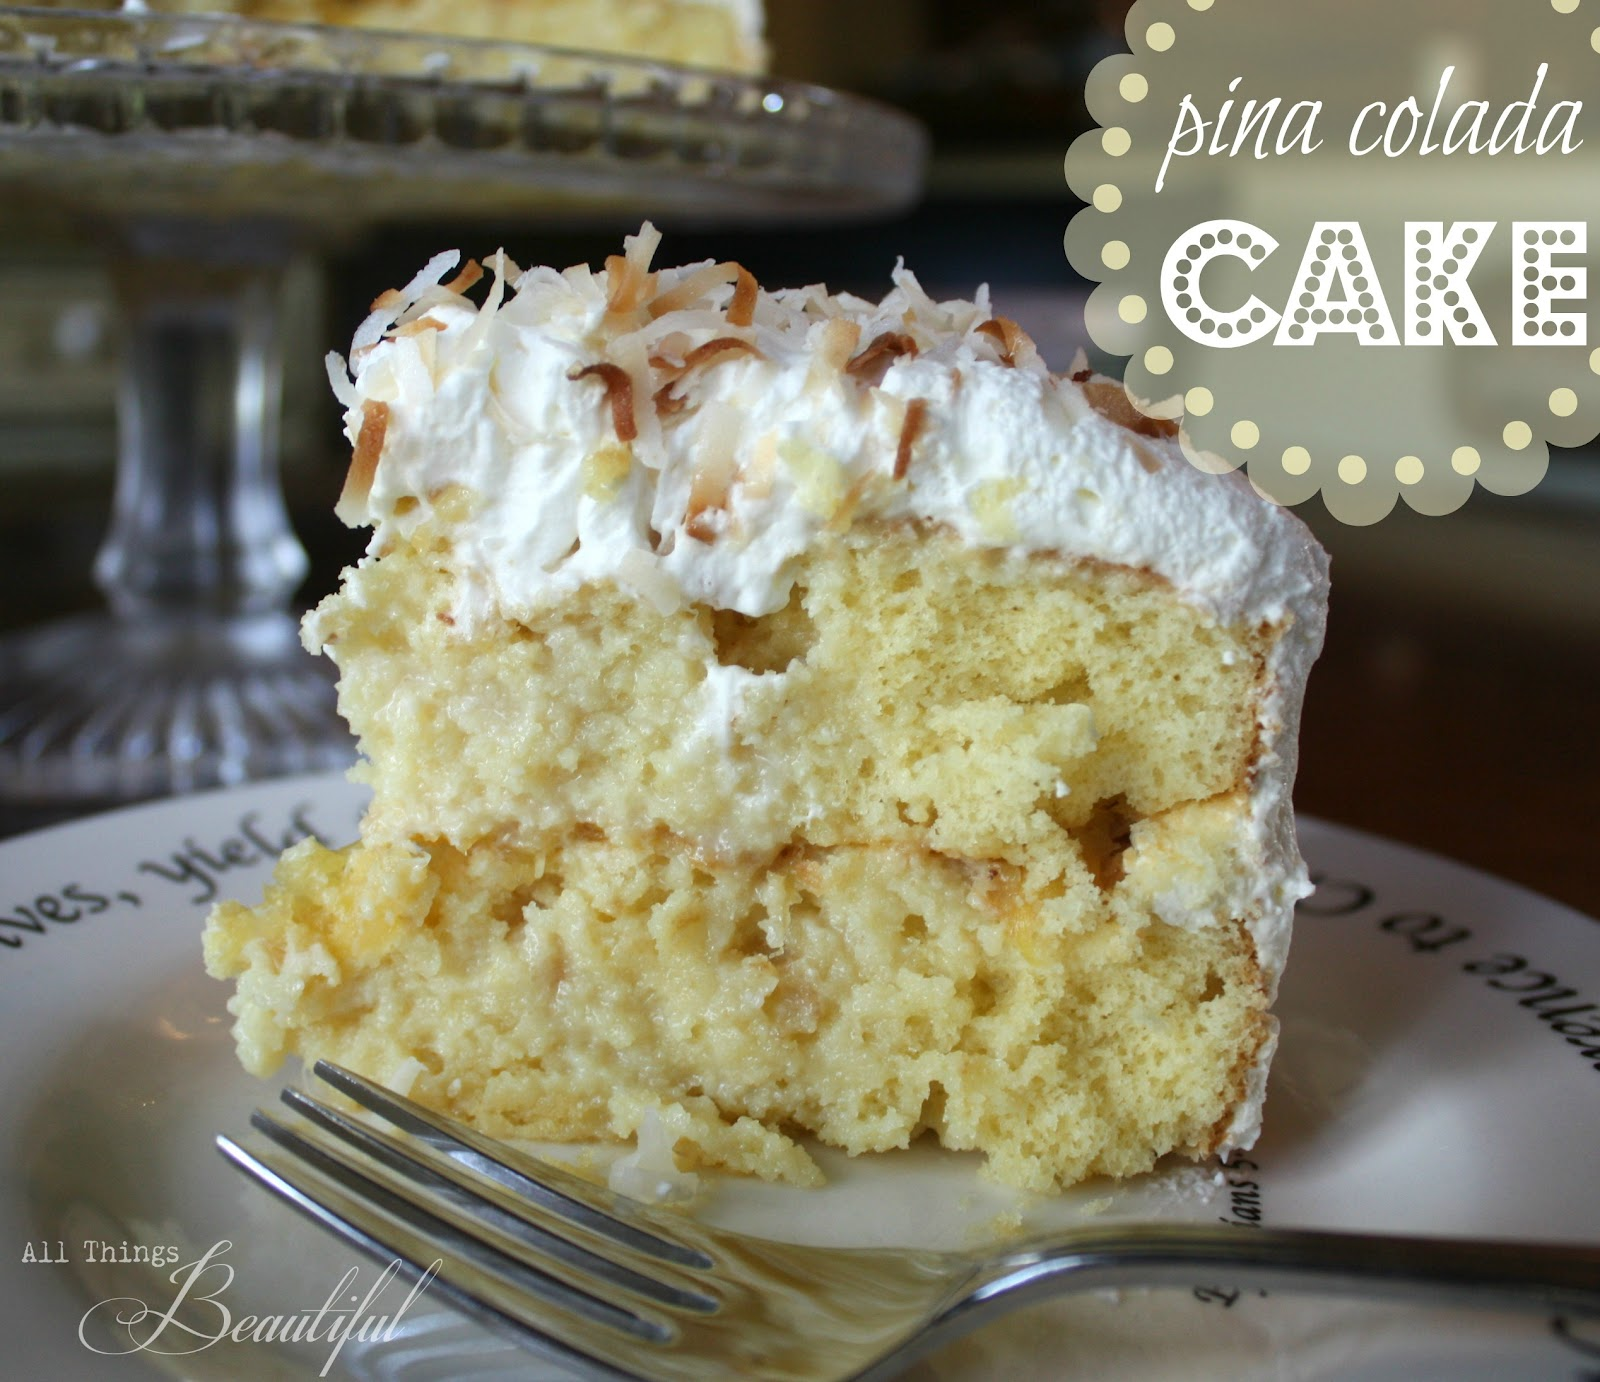 Best Recipe For Pina Colada Cake